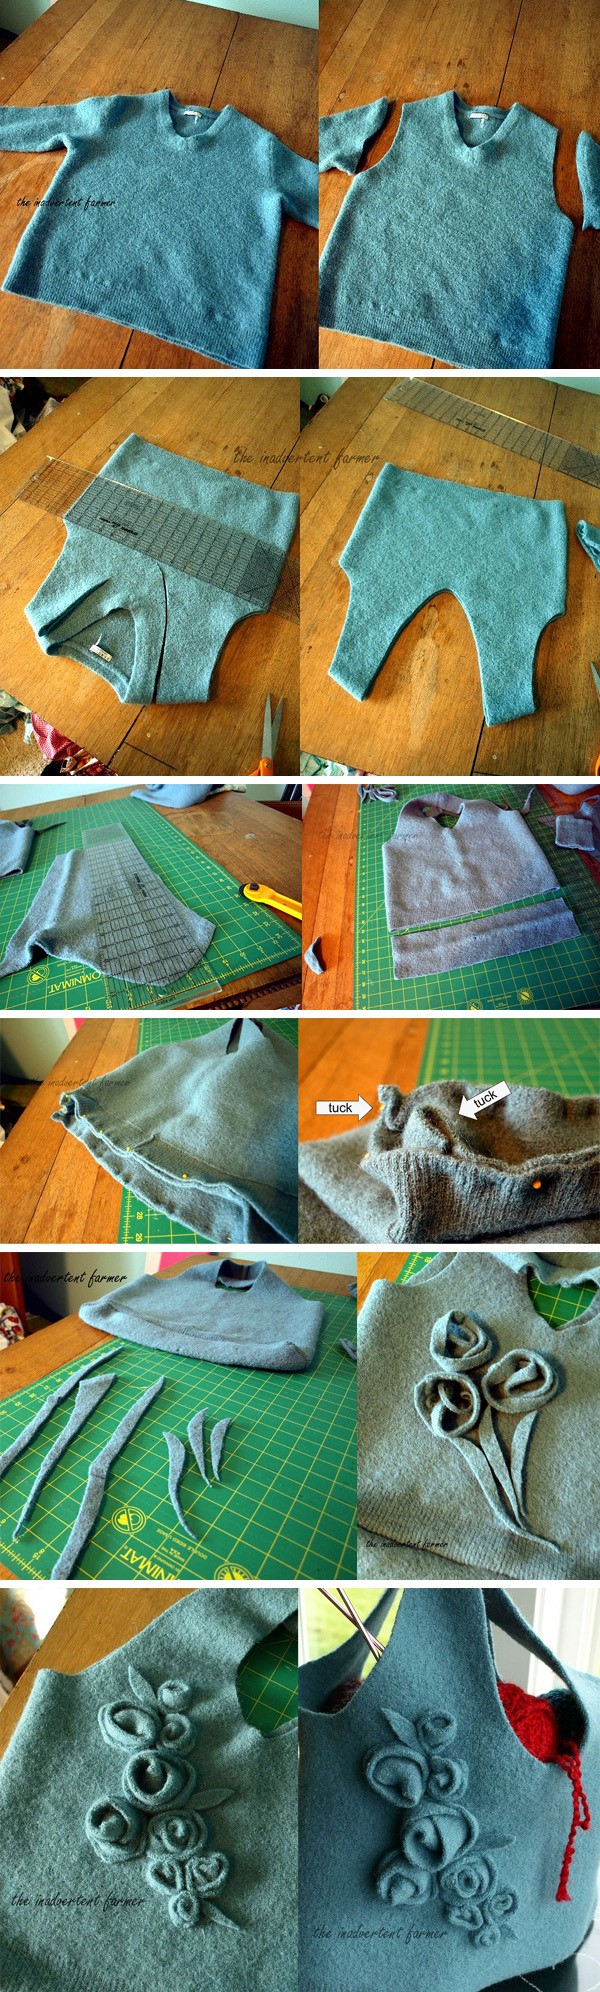 De Camiseta Jersey A Bolso Needle And Thread Pinterest  ~ Como Hacer Bolsas De Tela Para Zapatos